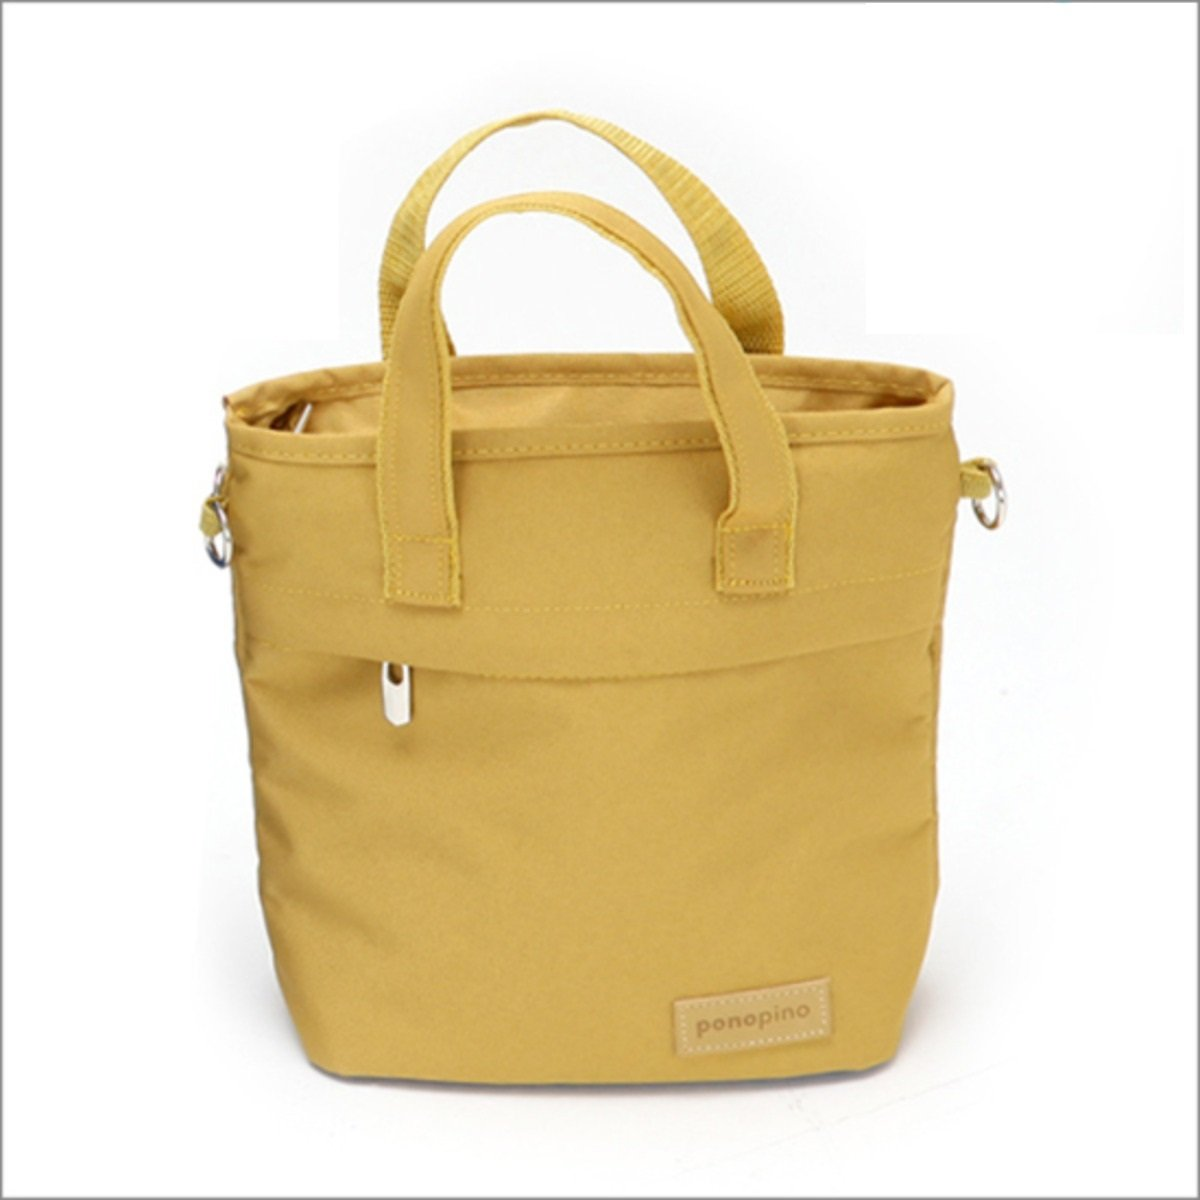 Ponopino messenger bag Mustard_Messenger2